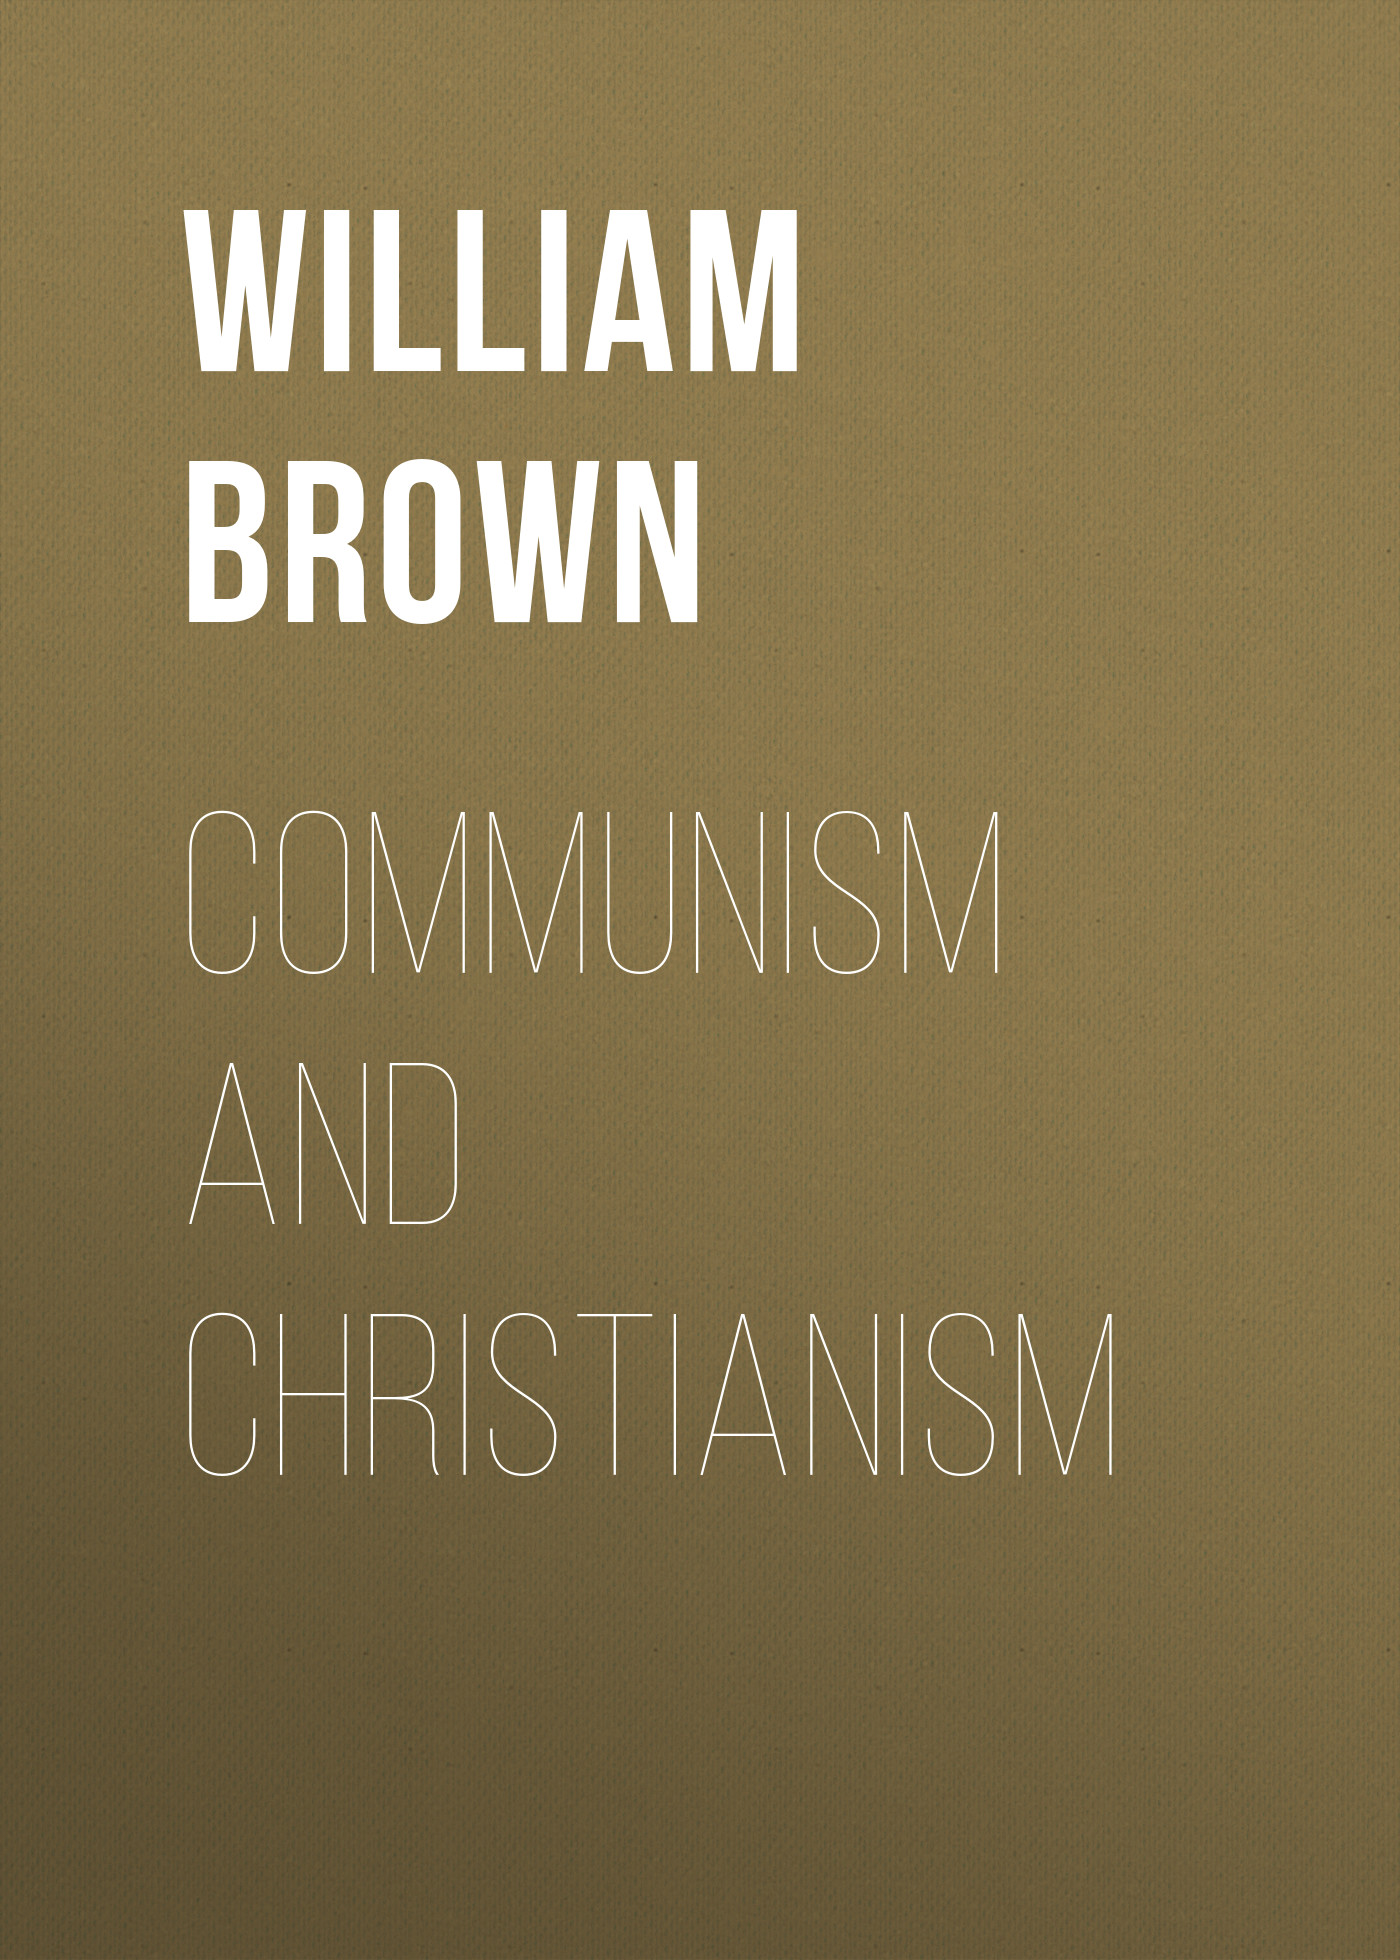 Brown William Montgomery Communism and Christianism